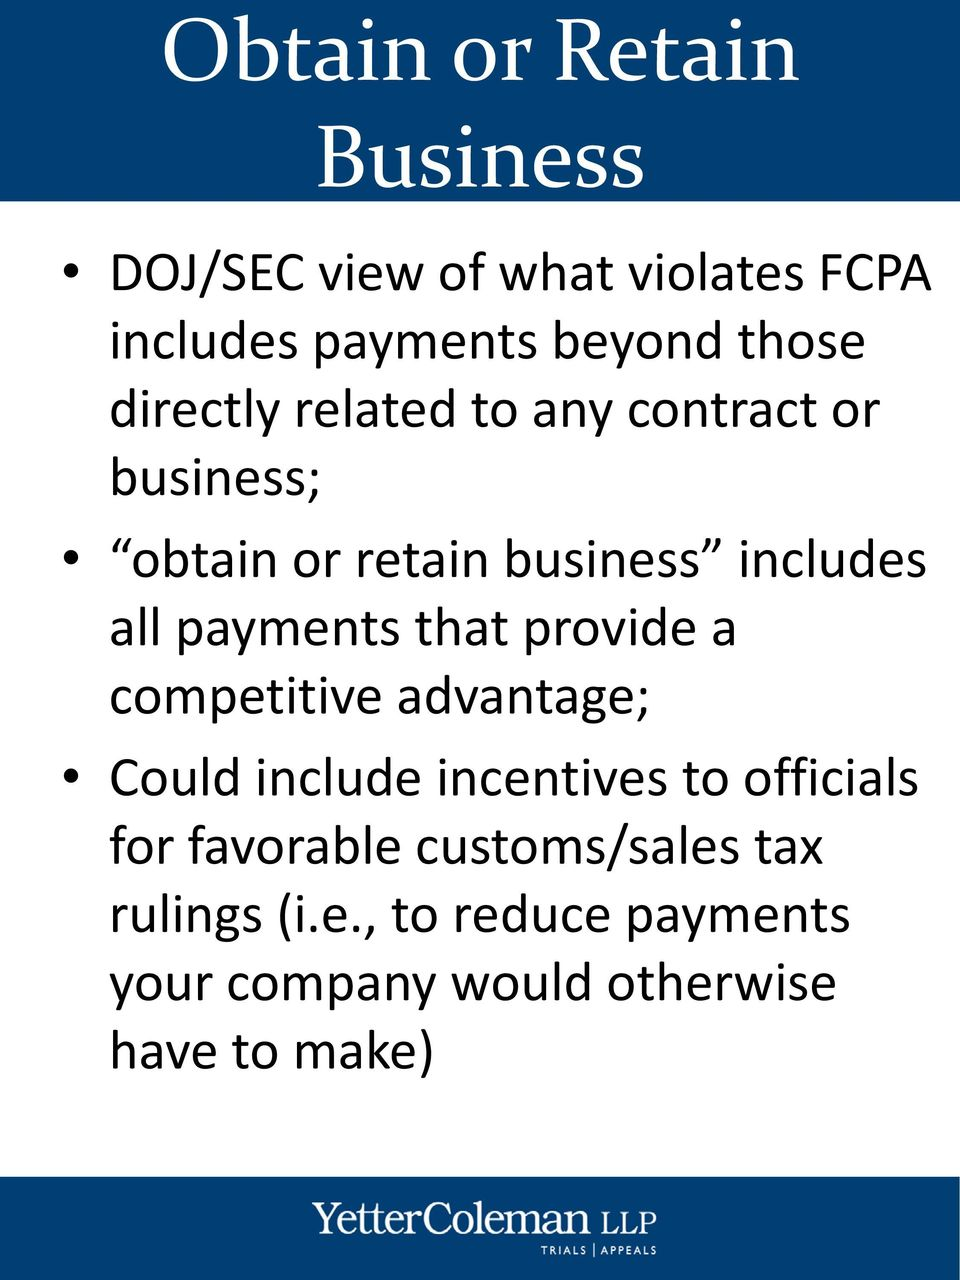 payments that provide a competitive advantage; Could include incentives to officials for